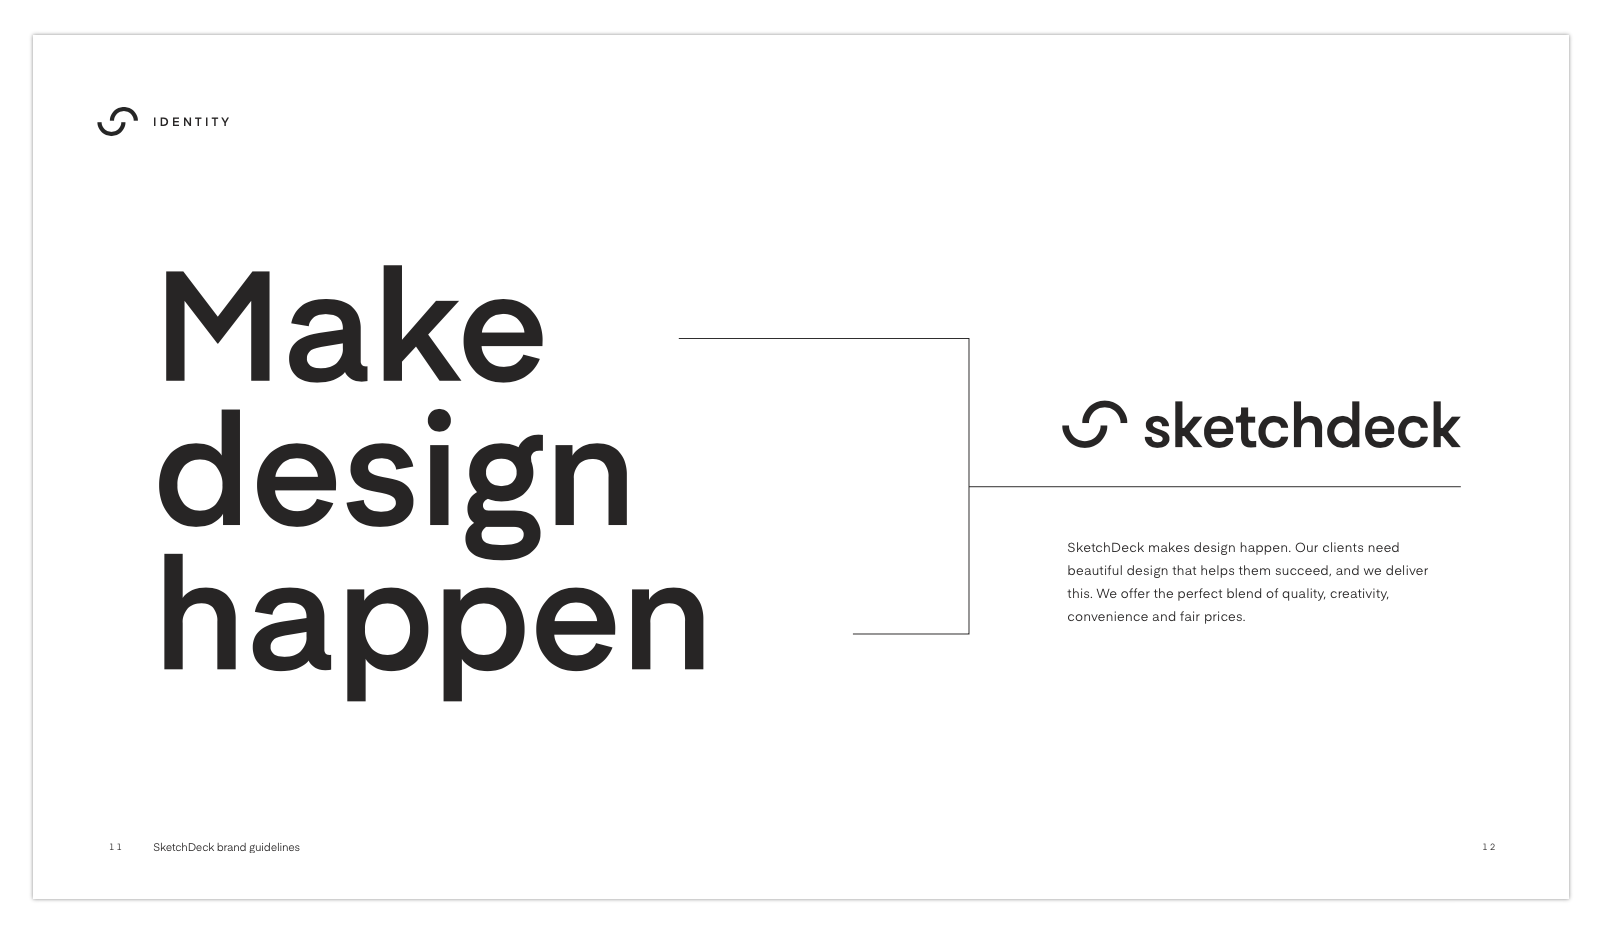 We make design happen :)